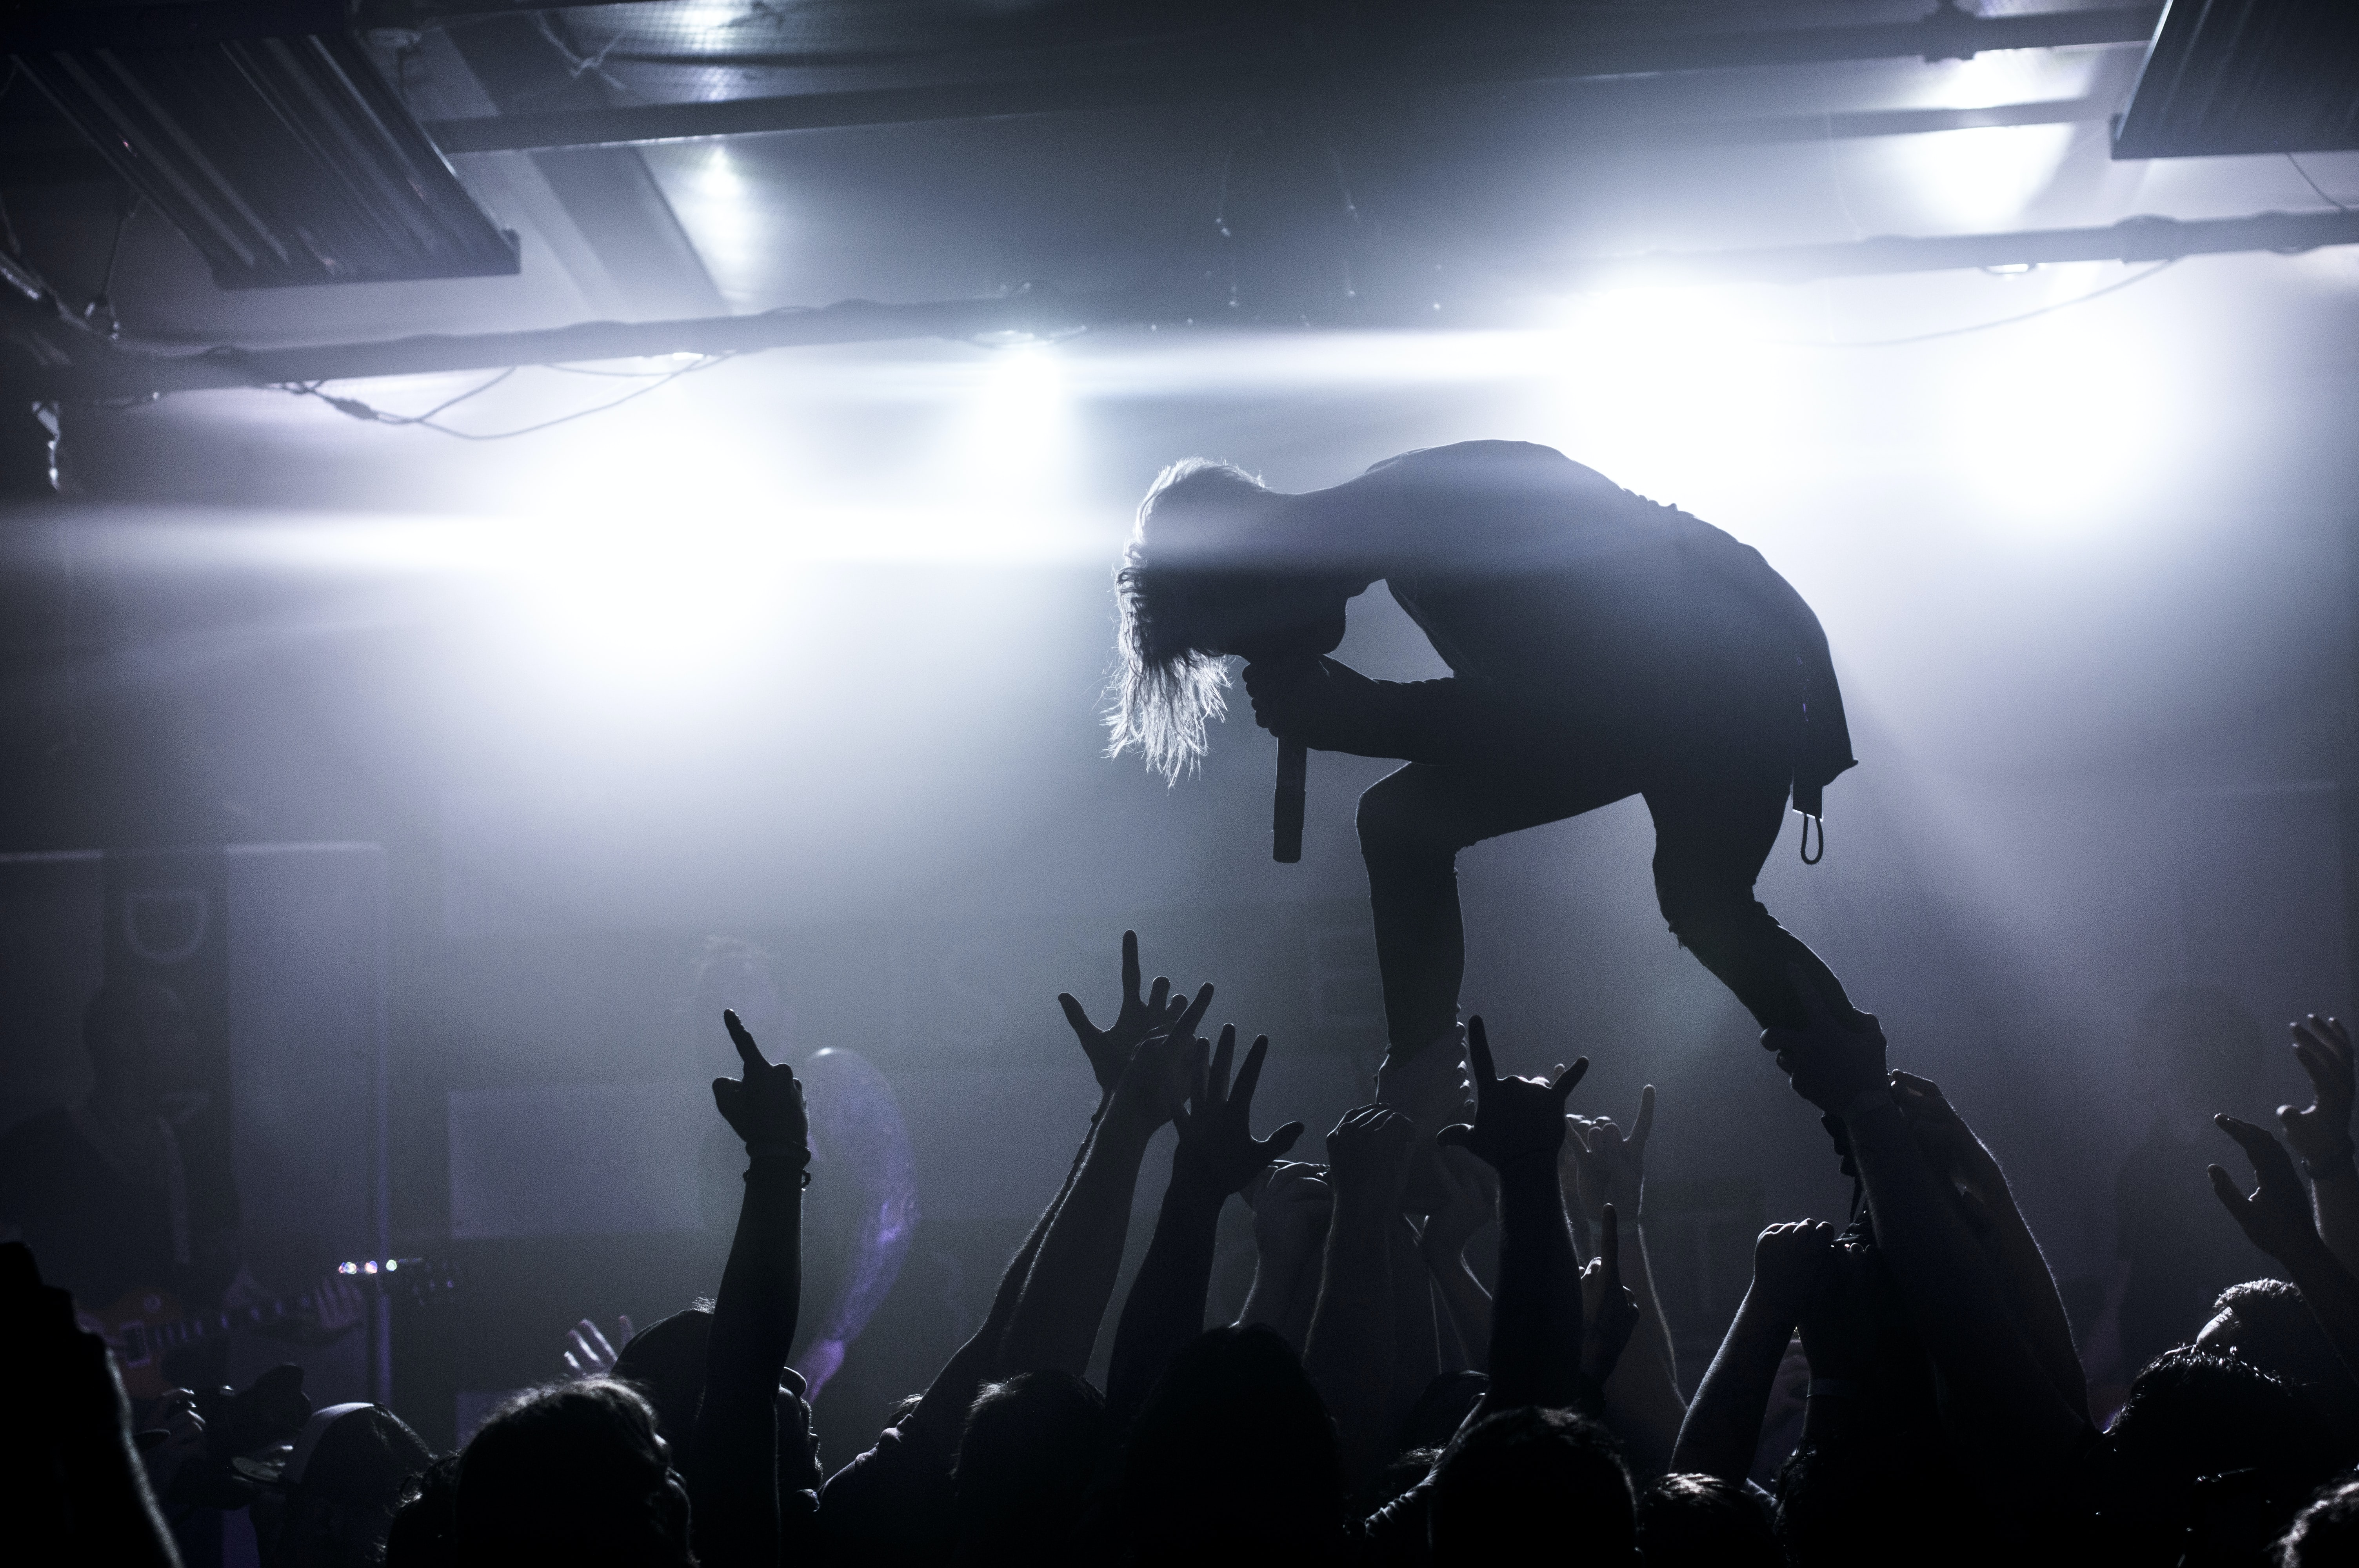 The silhouette of a vocalist held up in the air by the audience during a rock concert